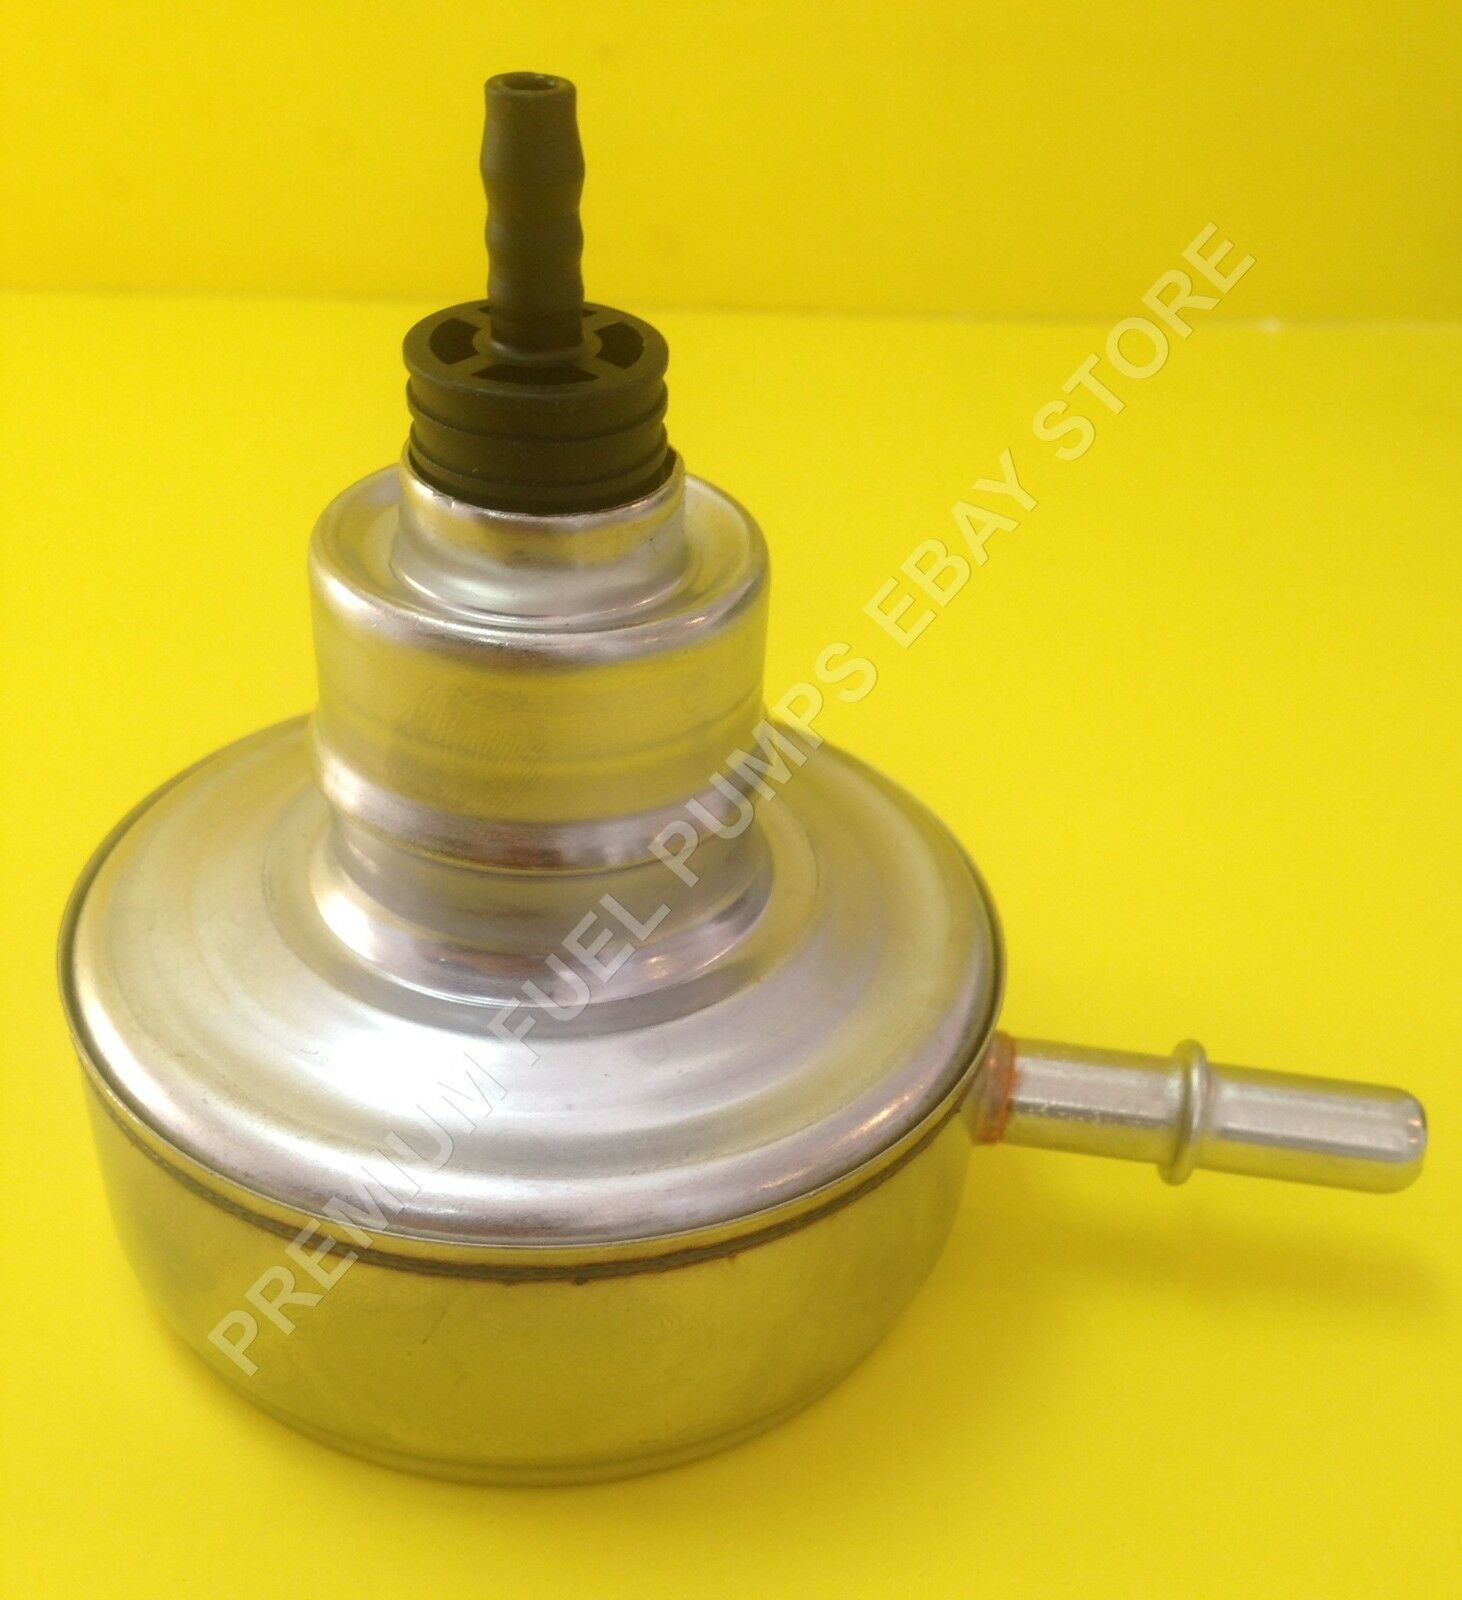 Dodge Trucks Vans Fuel Pressure Regulator Filter Made In 01 Ml320 Location 1 Of 1only 0 Available